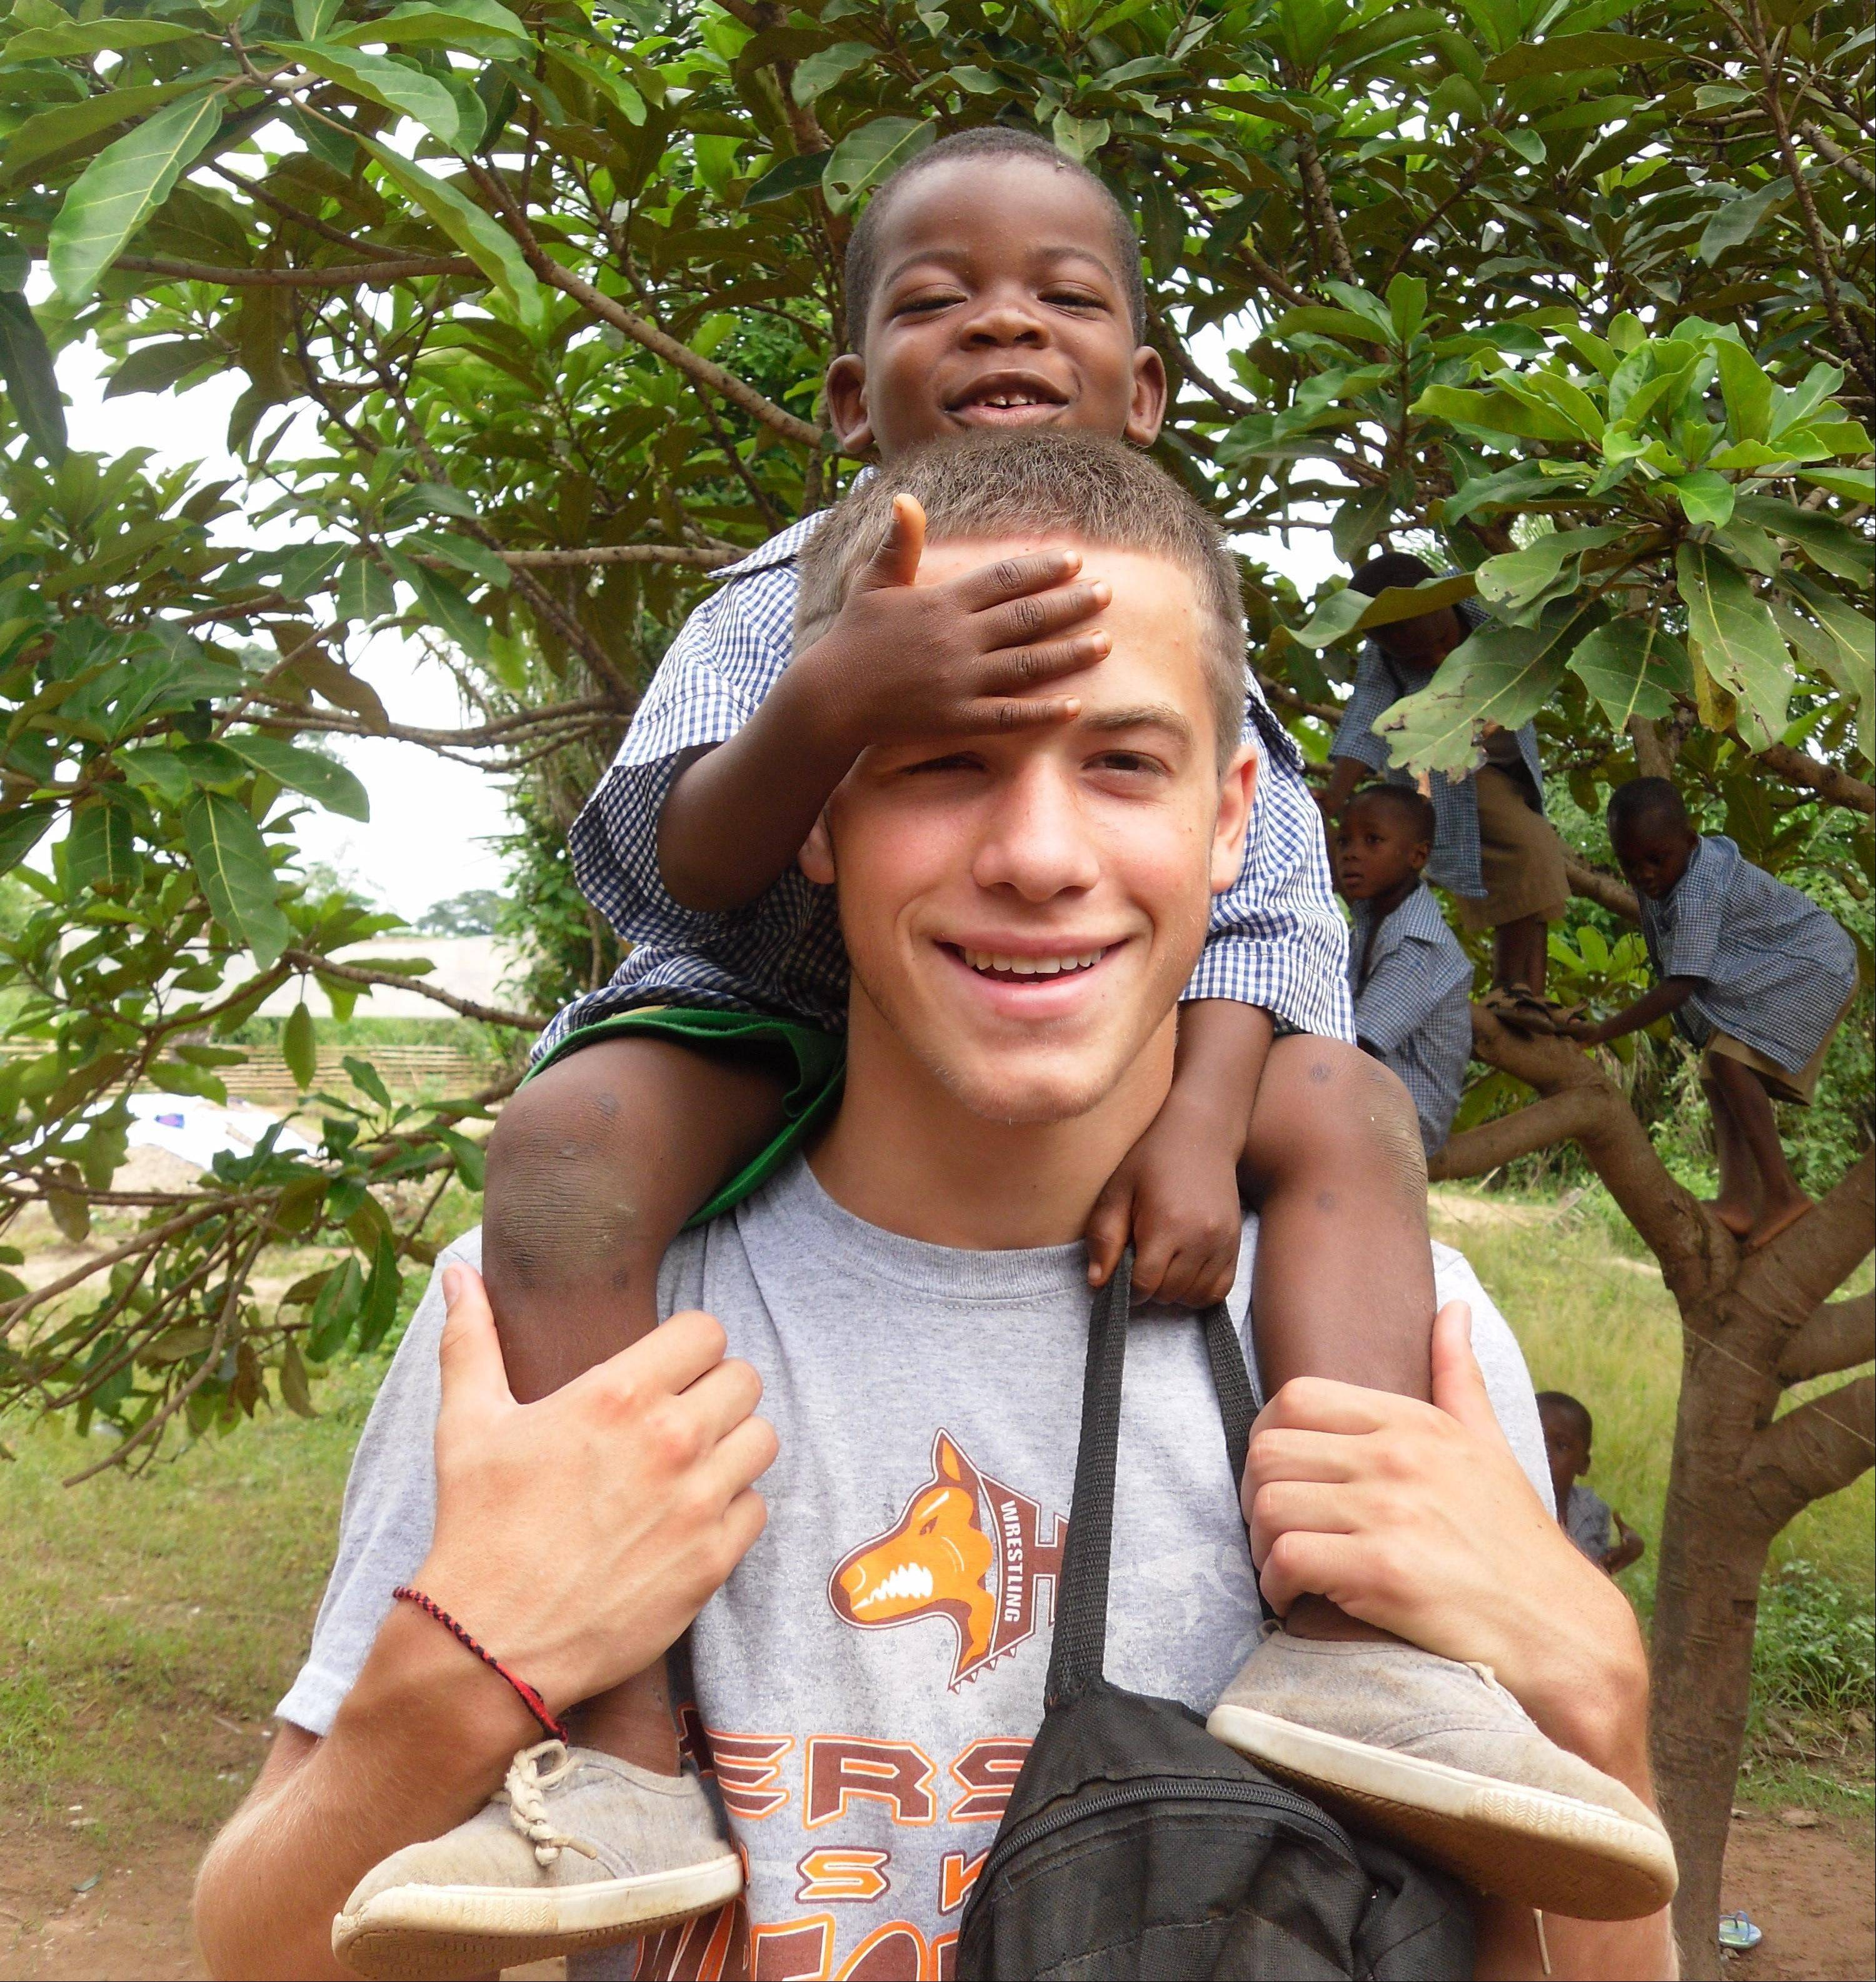 Hersey High School student Alex Baratta, 17, goofs around with one of the children he taught during a volunteer trip to Ghana.